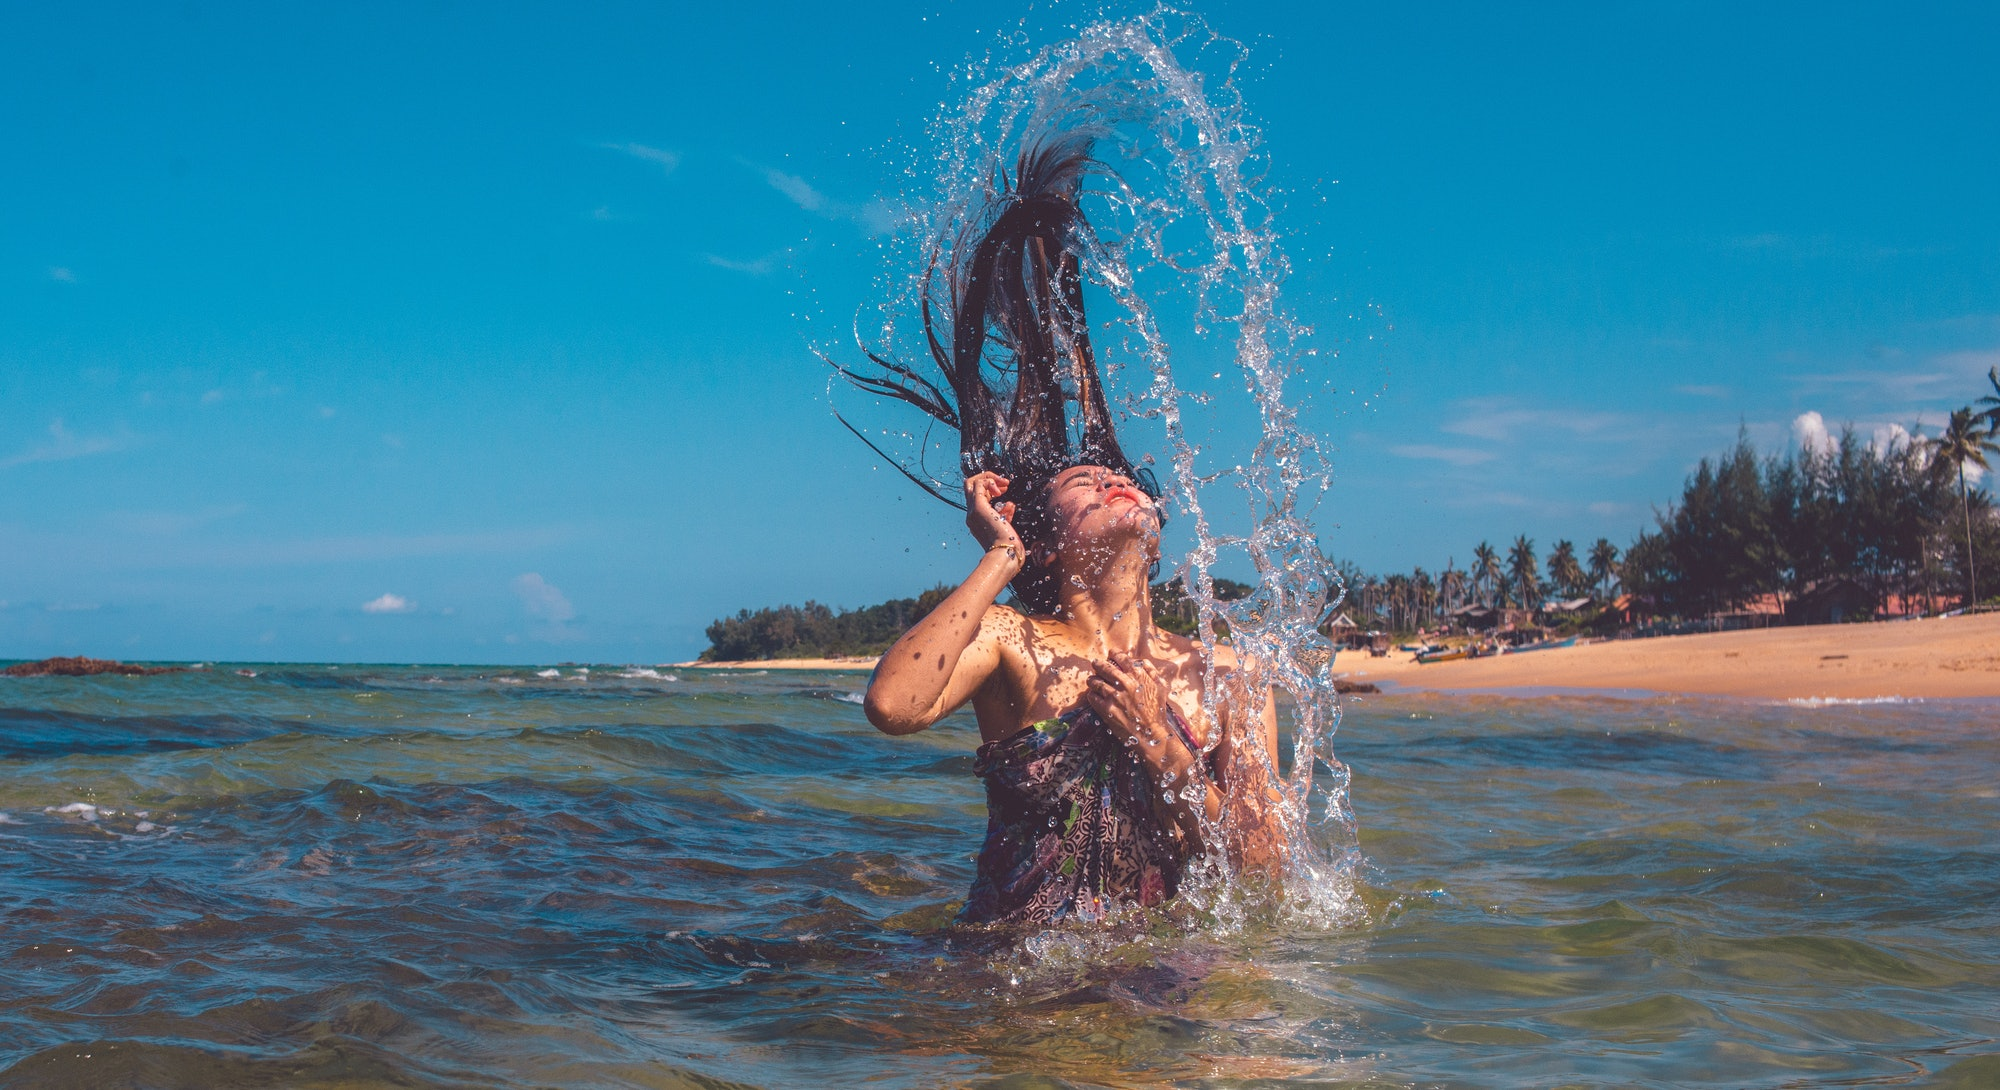 A person tosses their hair over their head as they emerge from the water. Even if you're new to swimming, you can get in some good swimming workouts.